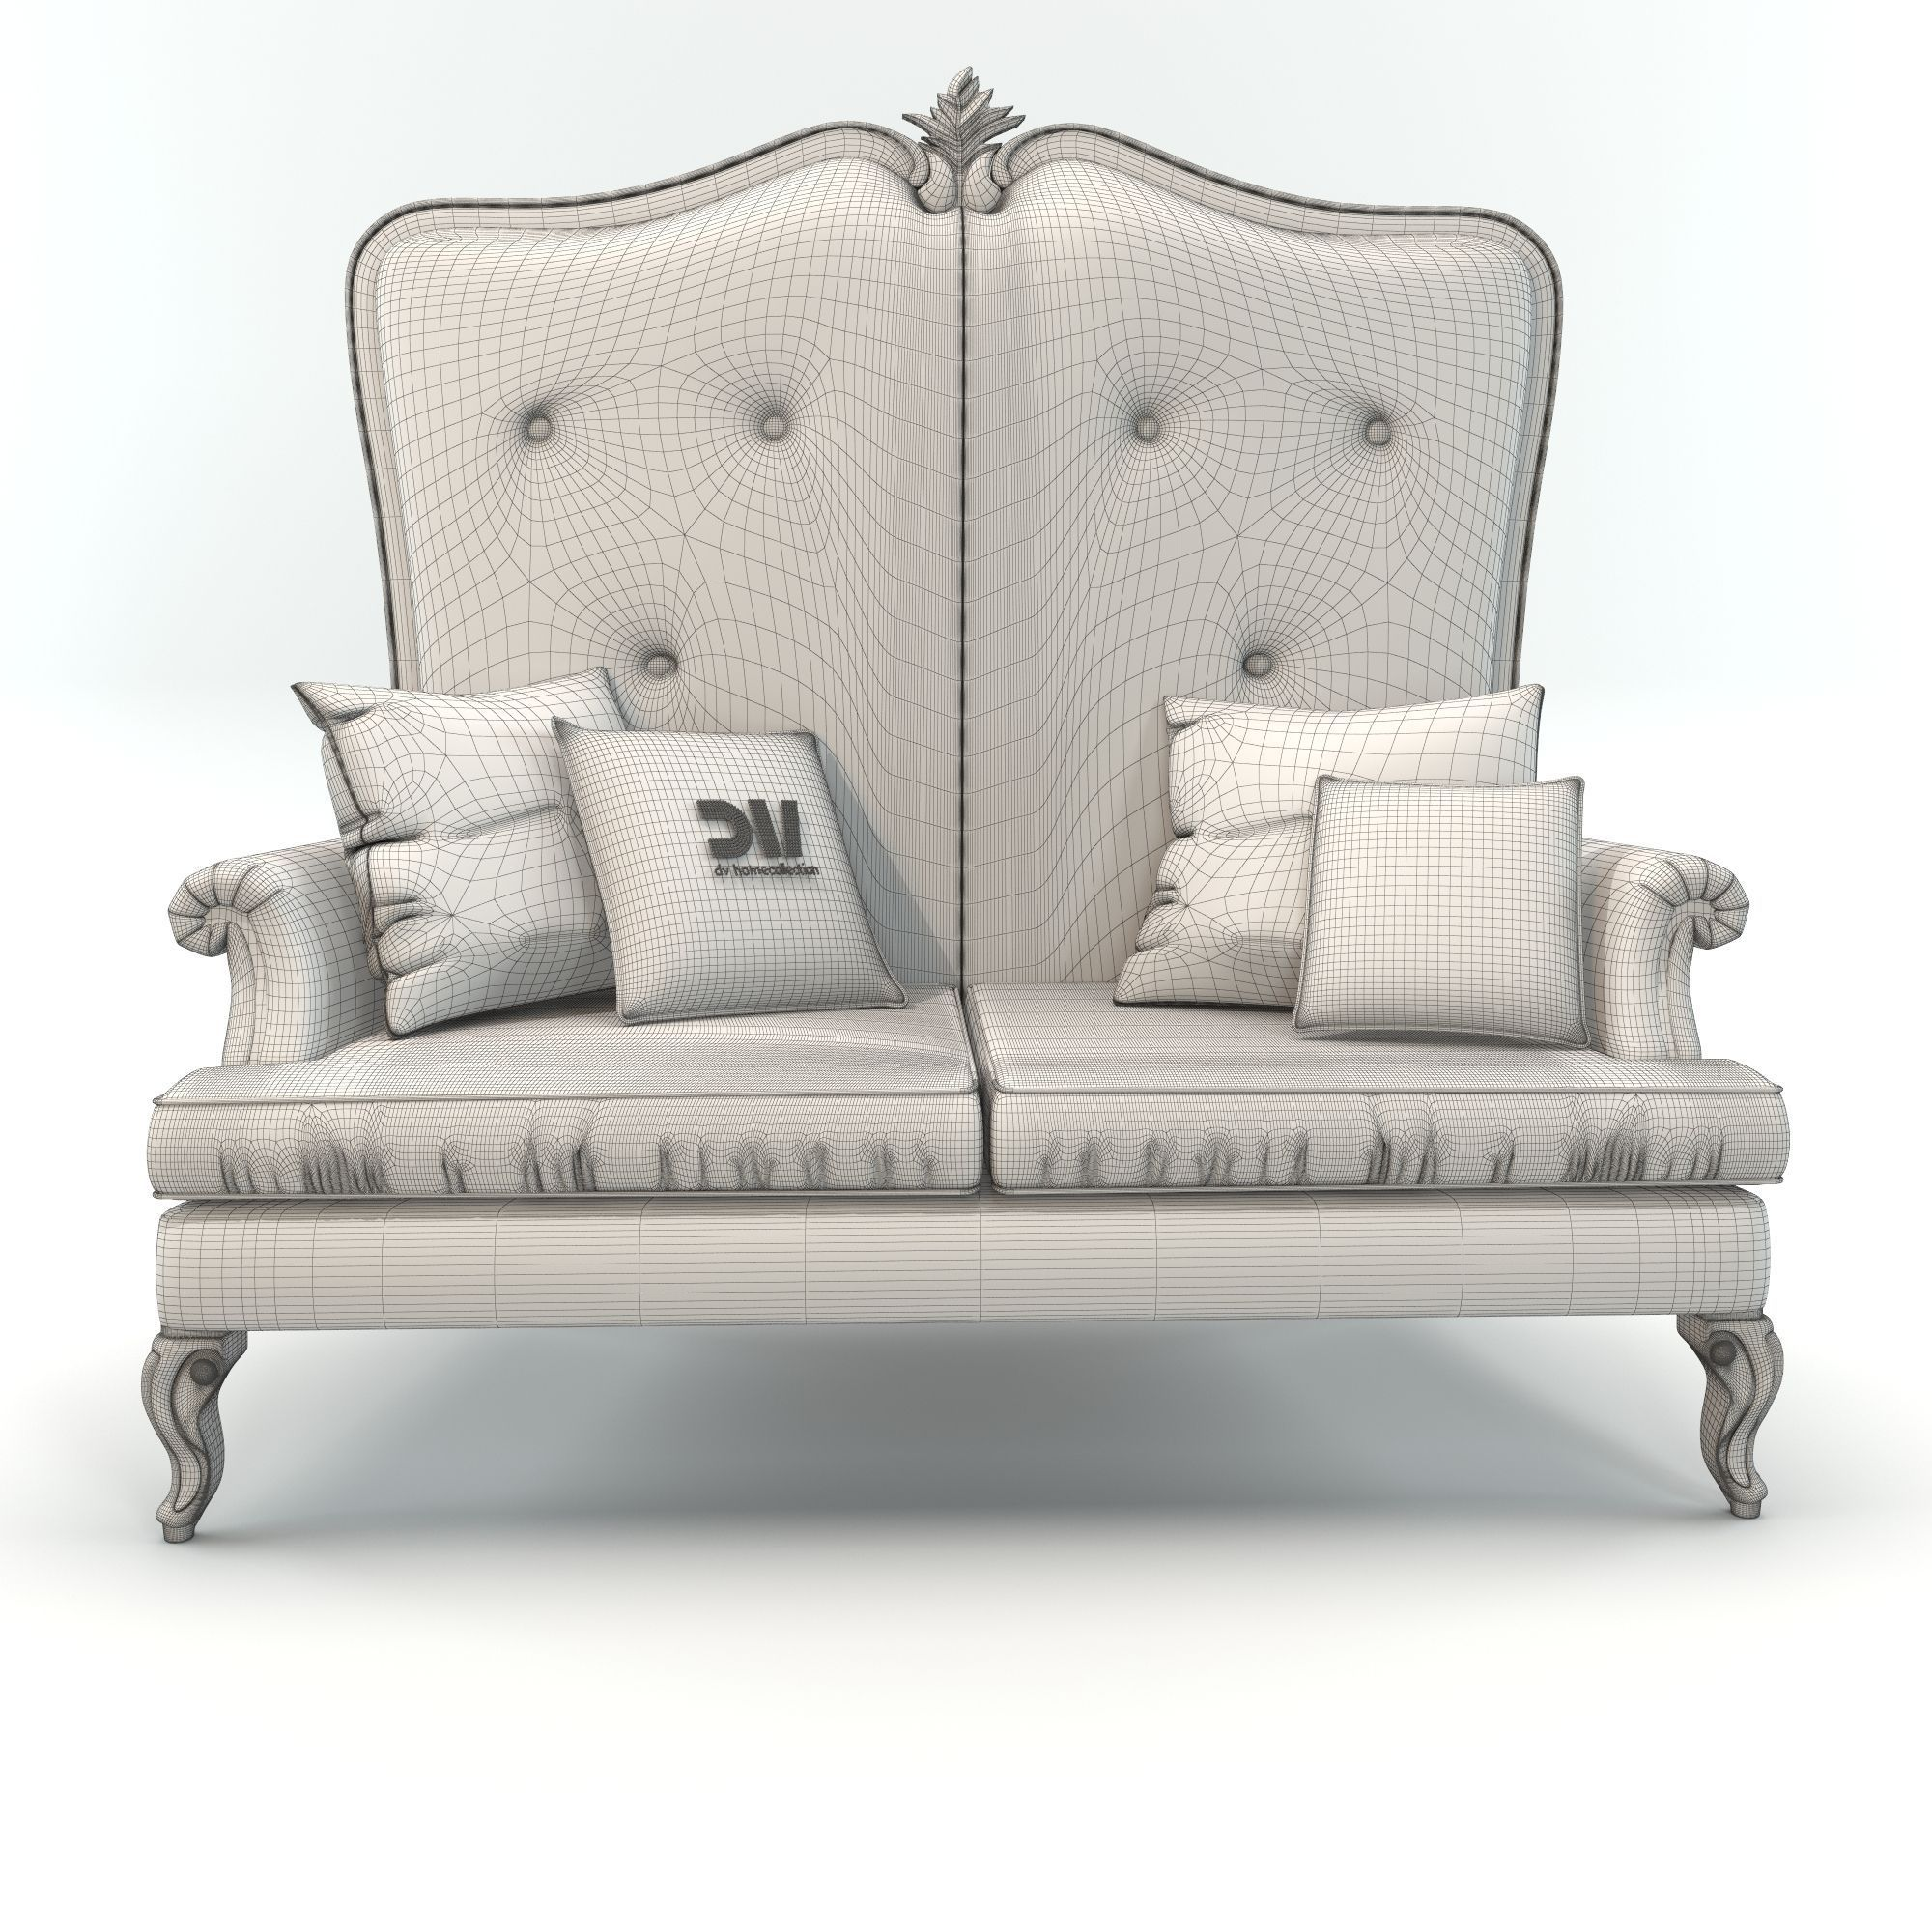 High Back Classic Elegant Sofa by DV Home Collection 3D model MAX